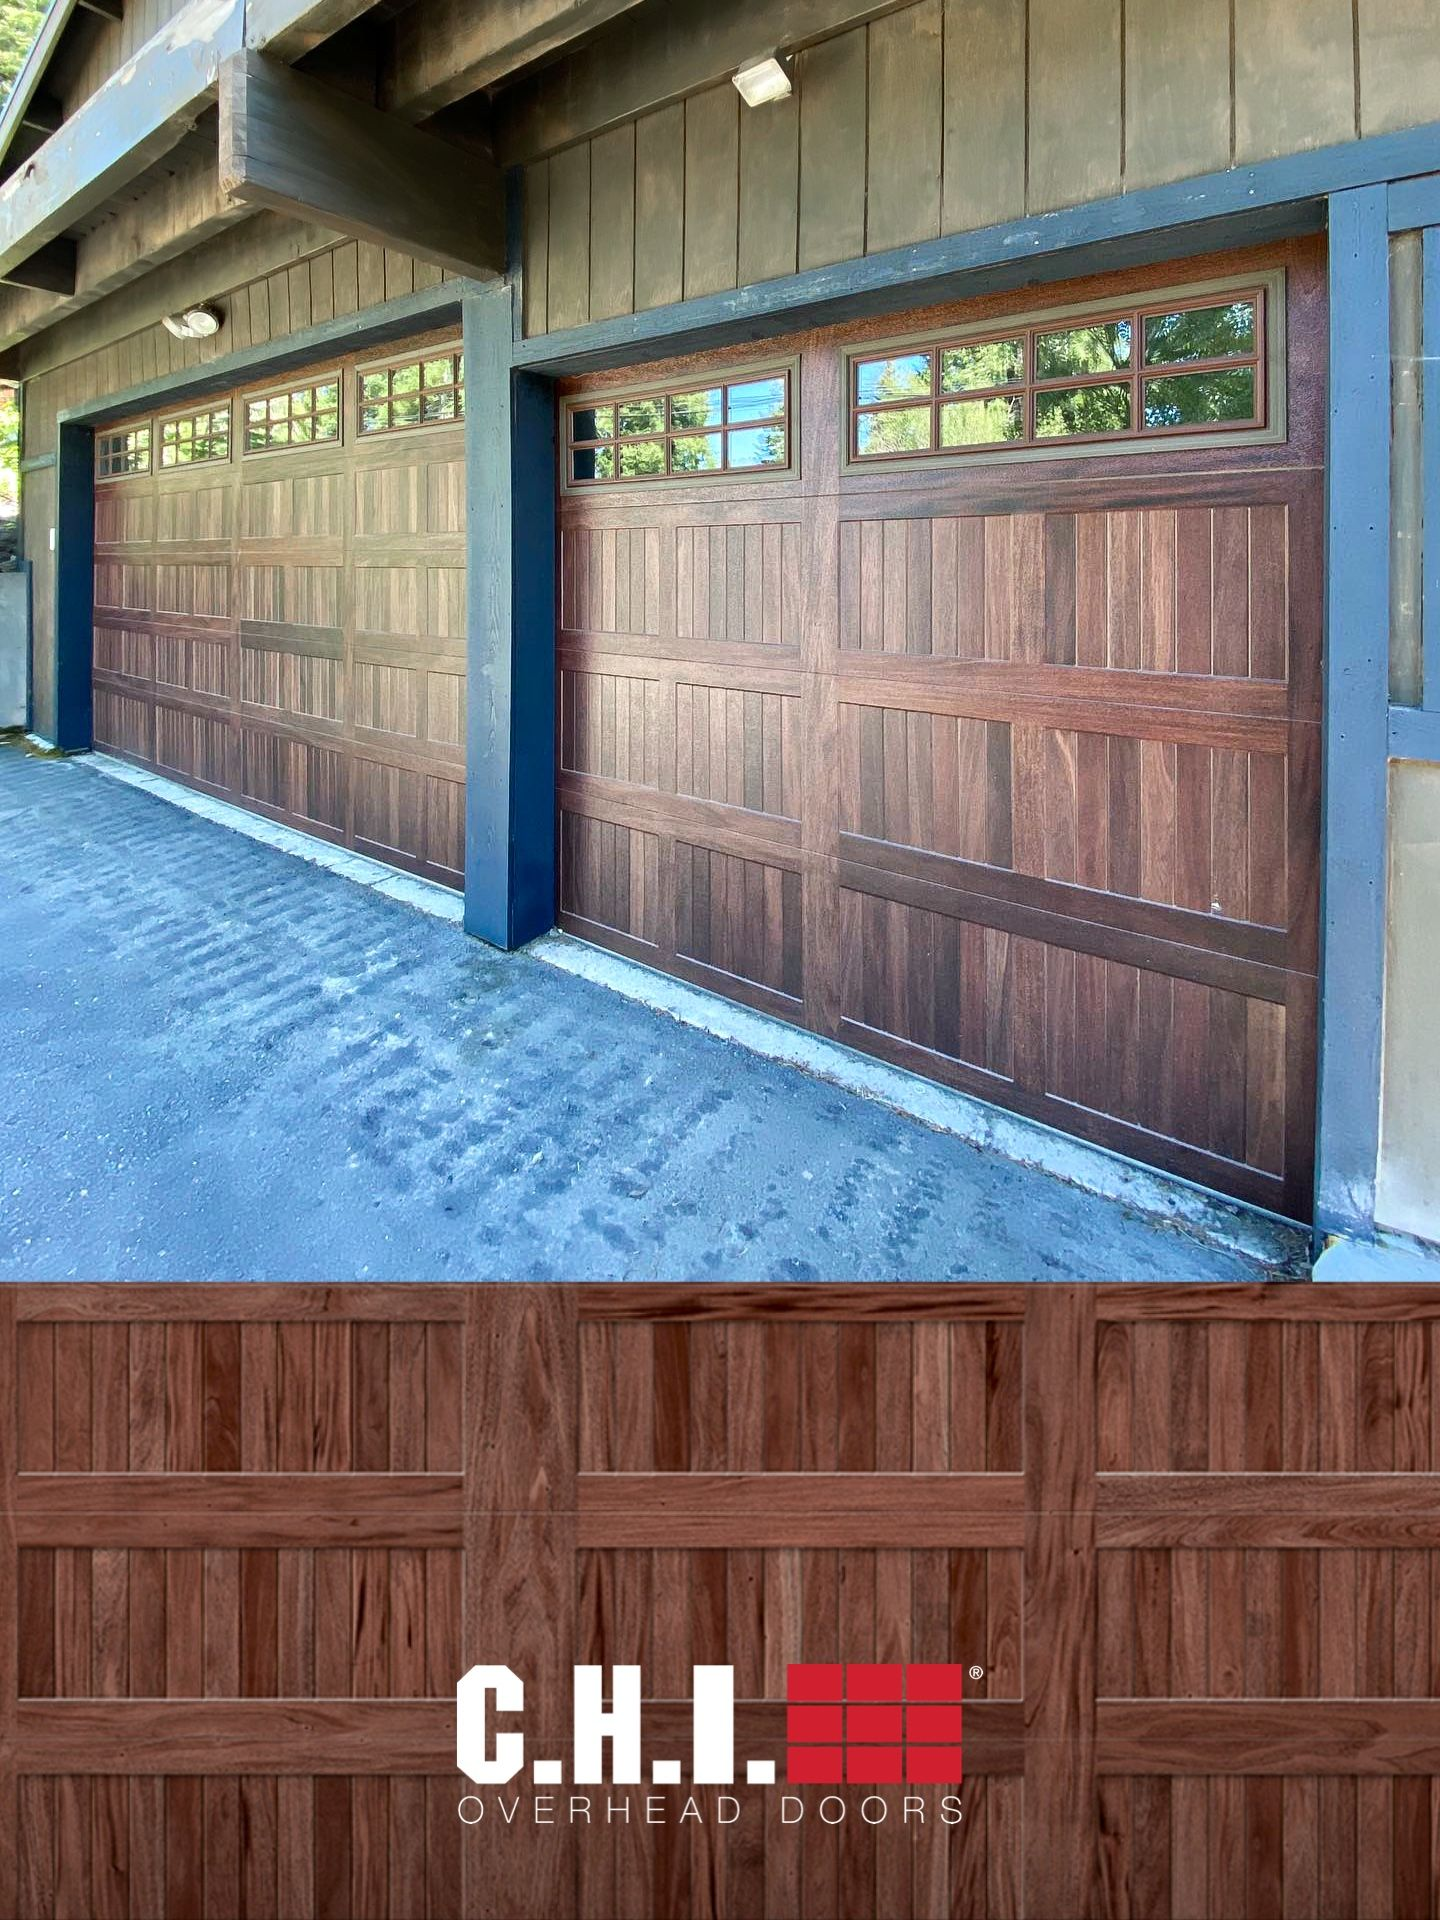 Stamped Carriage House Faux Wood Garage Doors On Mountain Home Exterior Refresh In 2020 Garage Doors Carriage Style Garage Doors Wood Garage Doors